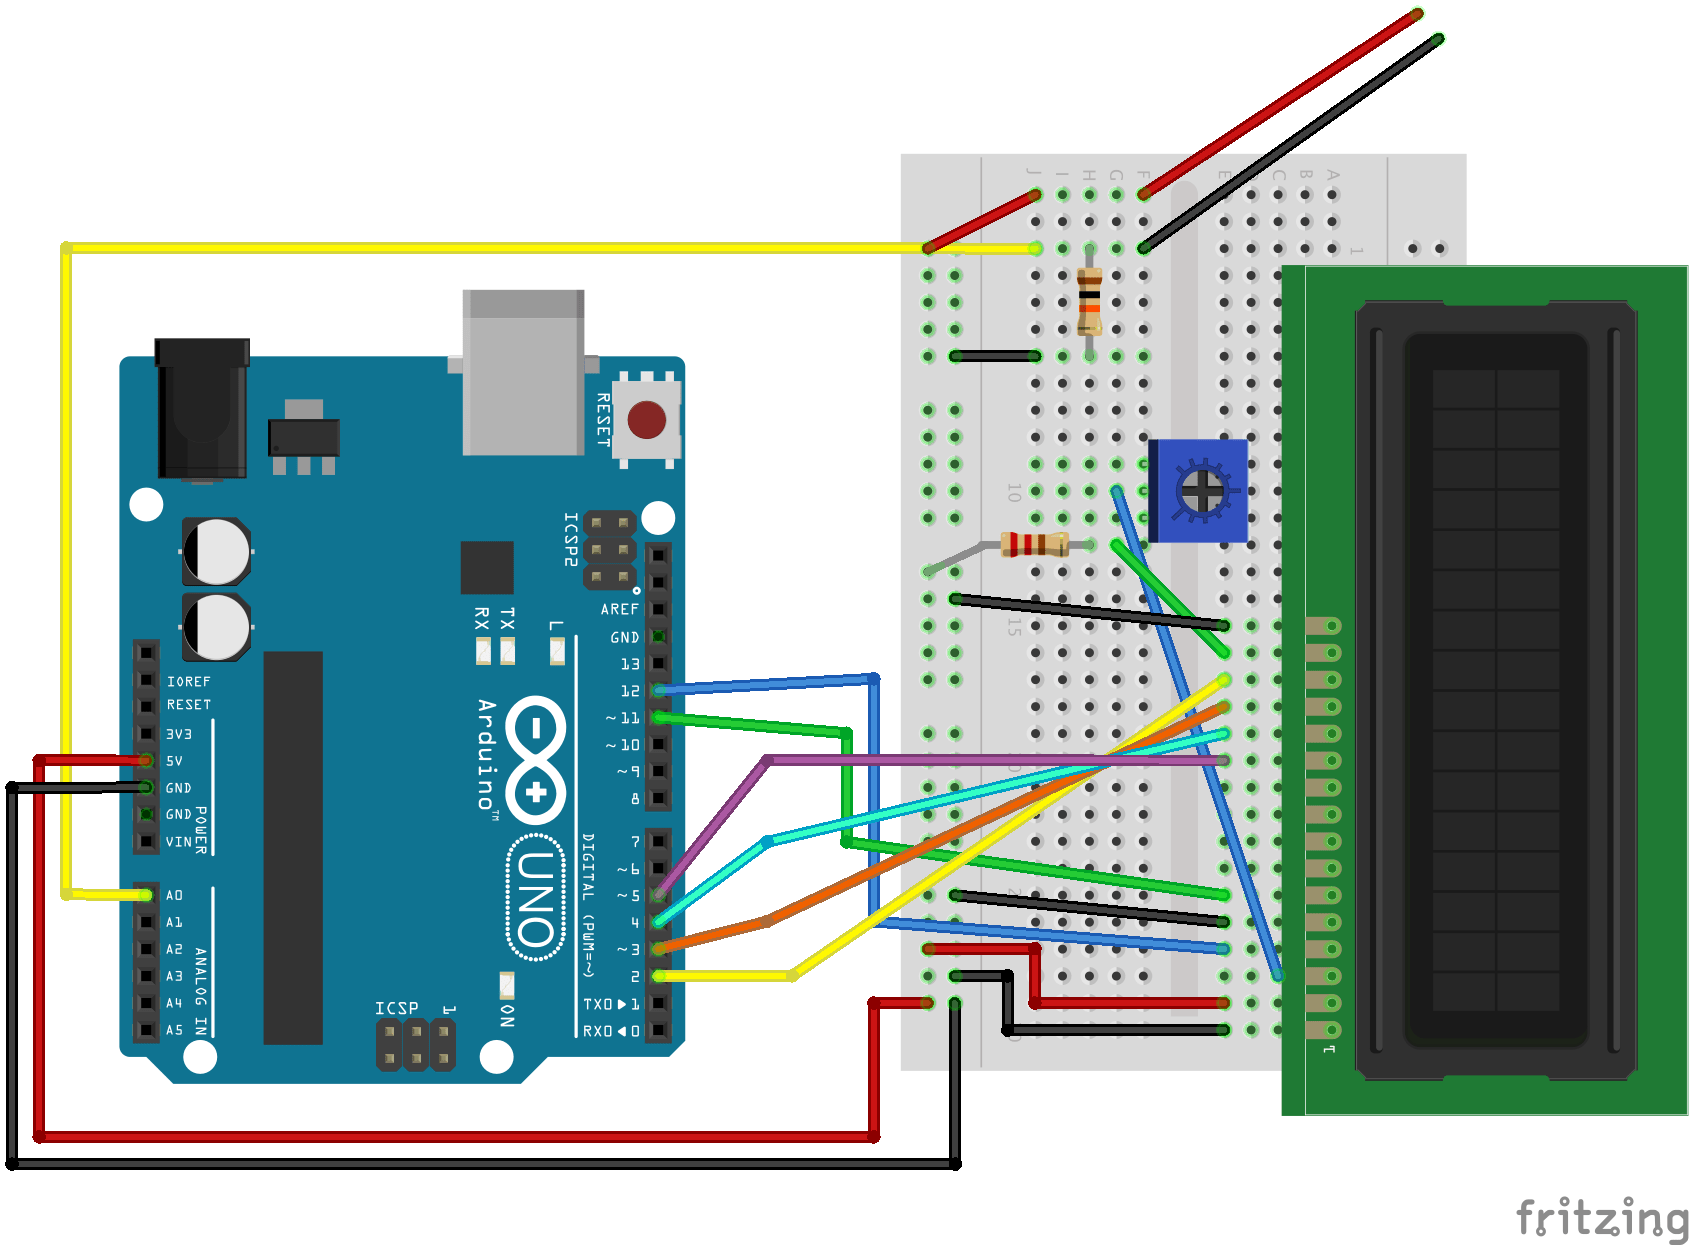 Build And Test A Conductivity Probe With Arduino Activity Circuit Diagram Electronics Circuits Students Wiring Figure 12 Is The Corresponding Schematic Note Although 11 Does Not Show Trimpot Connected To Gnd Anode